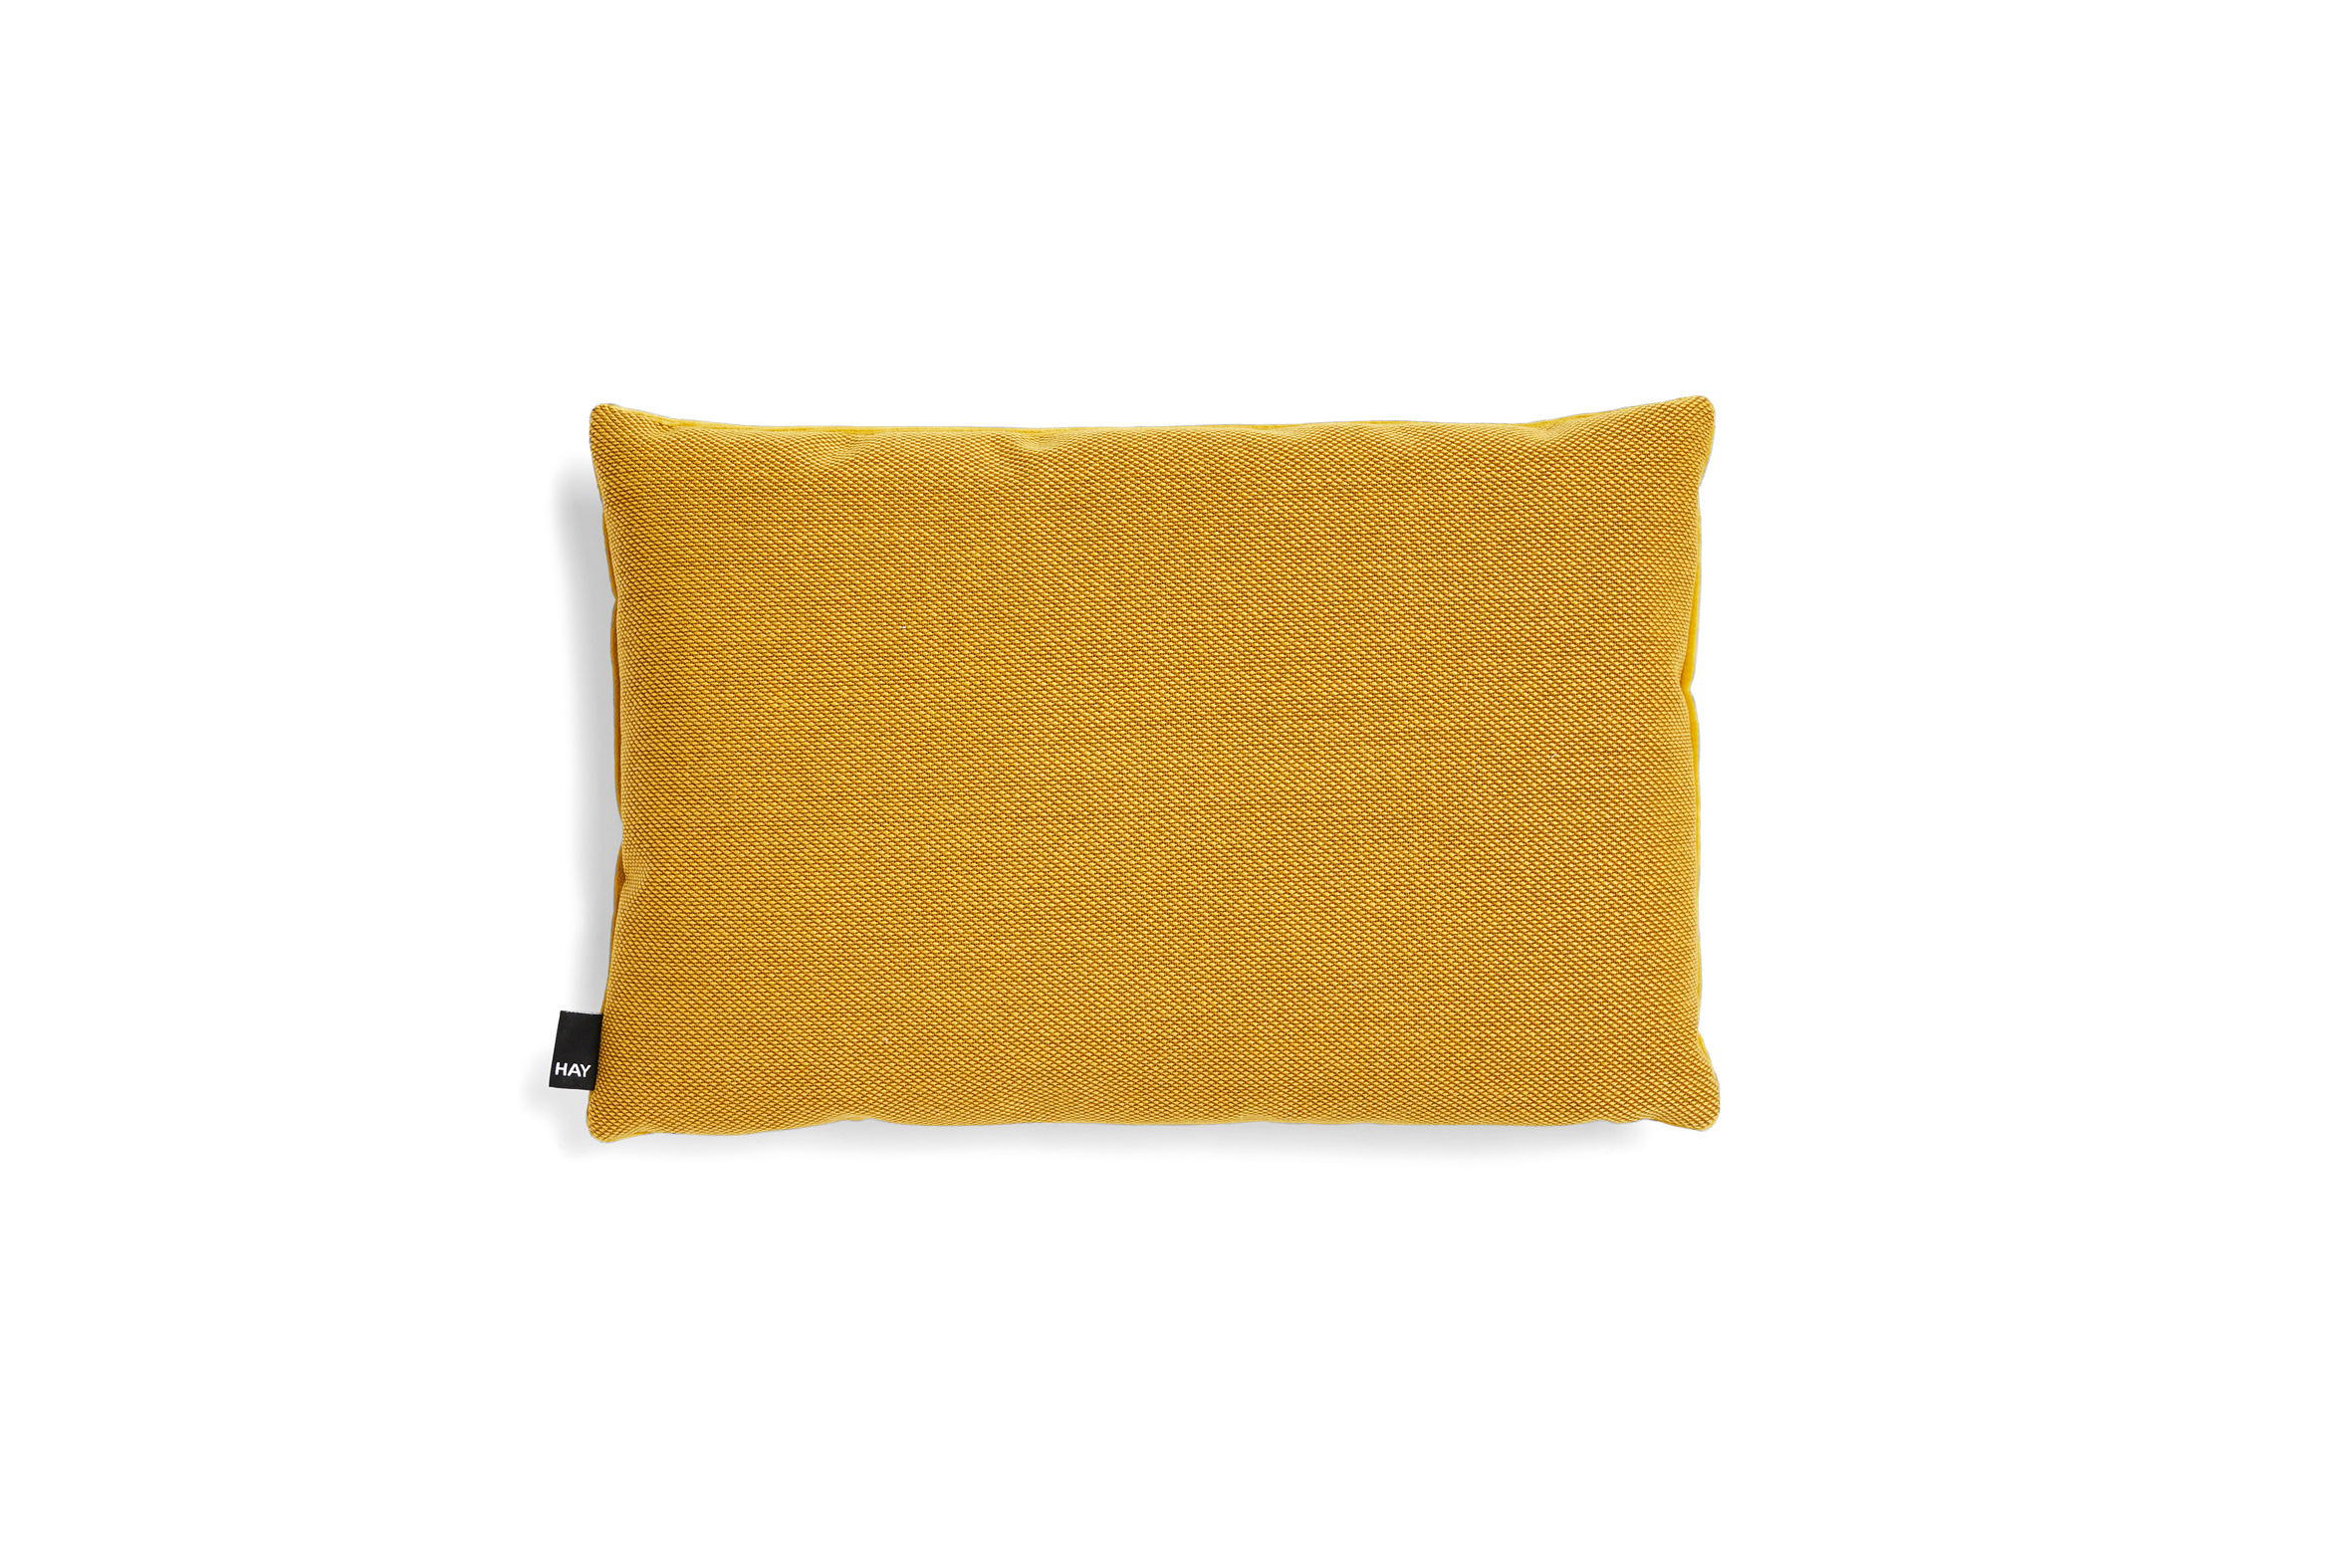 Eclectic cushion 45x30 yellow